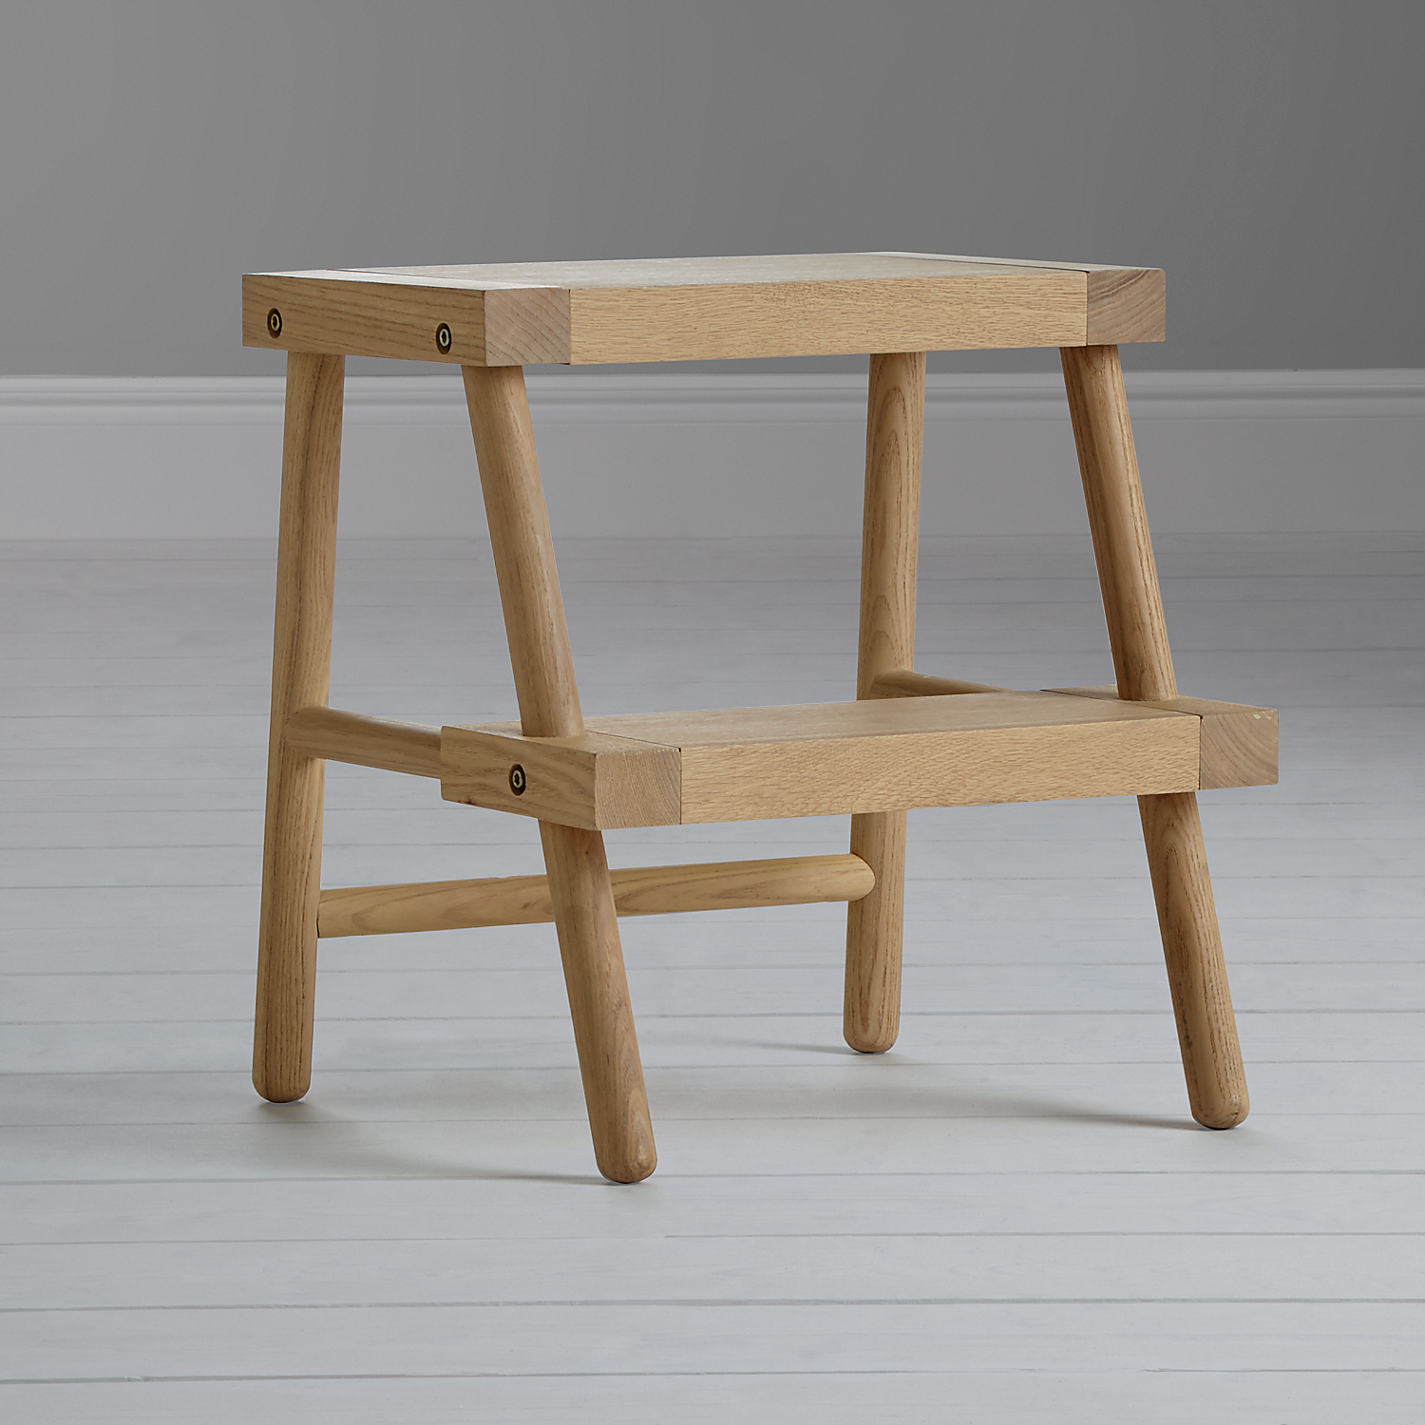 Buy Design Project by John Lewis No.008 Bathroom Stool | John Lewis